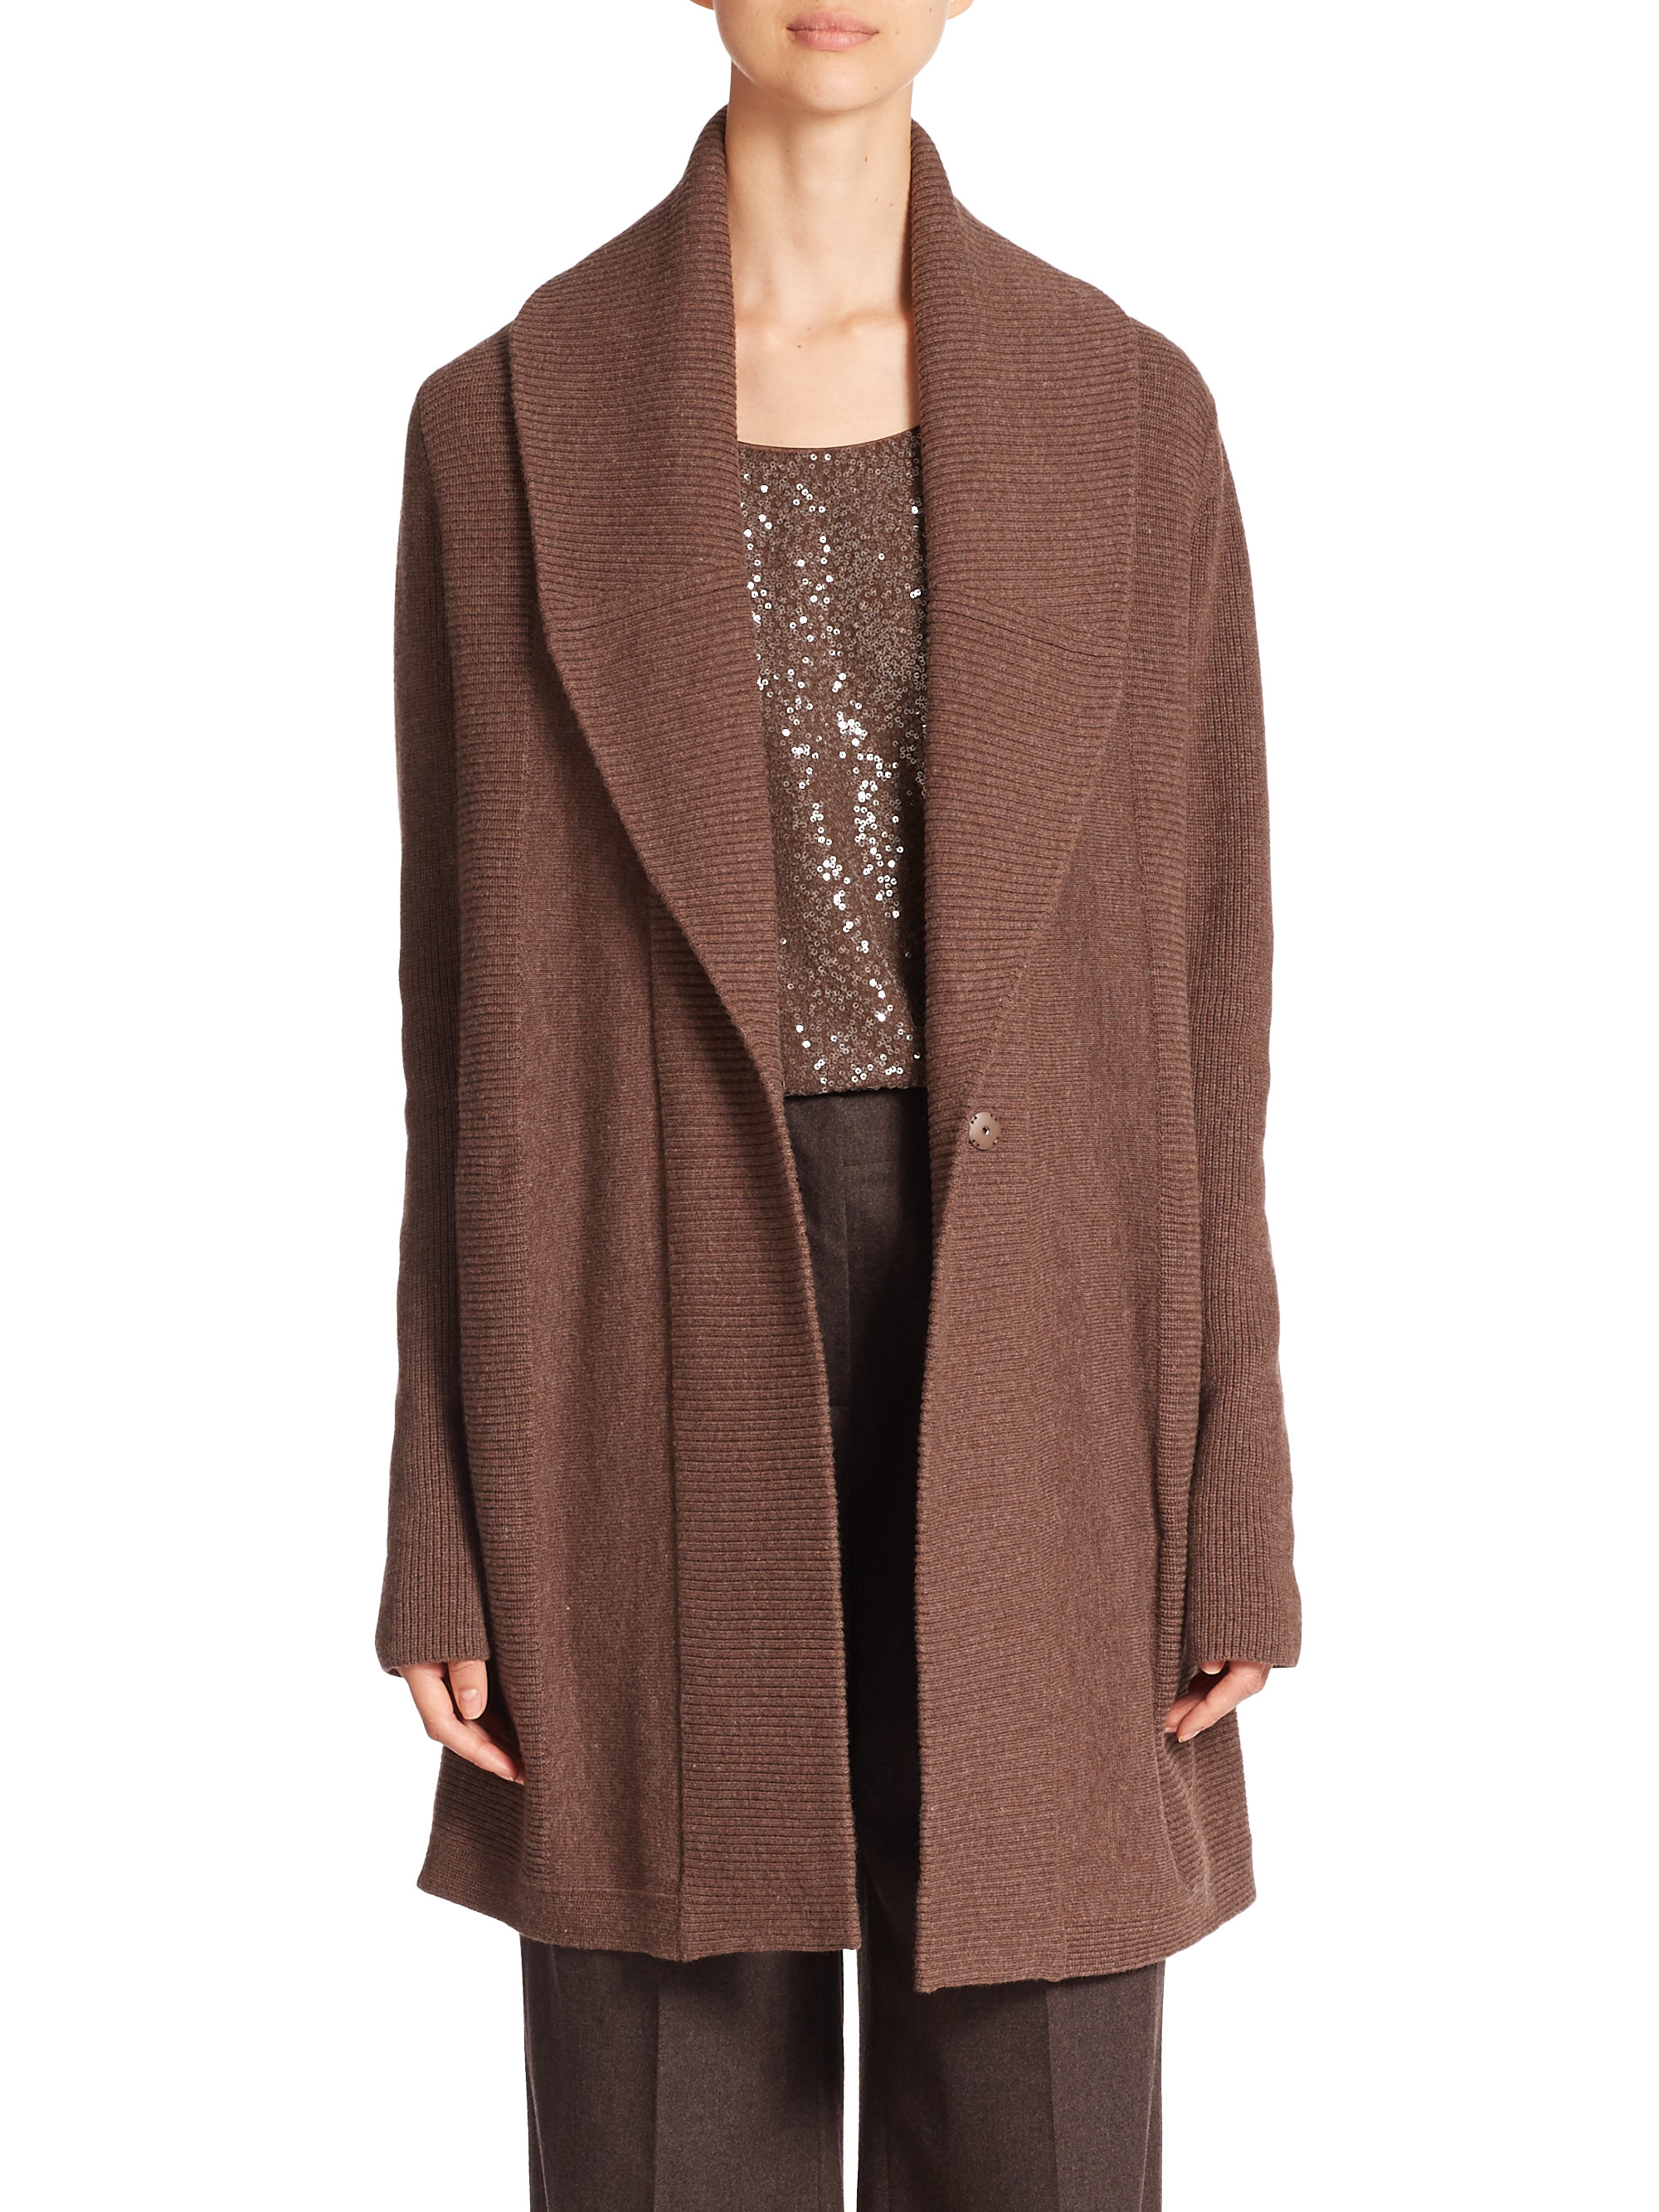 Lafayette 148 new york Ribbed Long Wool Cardigan in Brown | Lyst